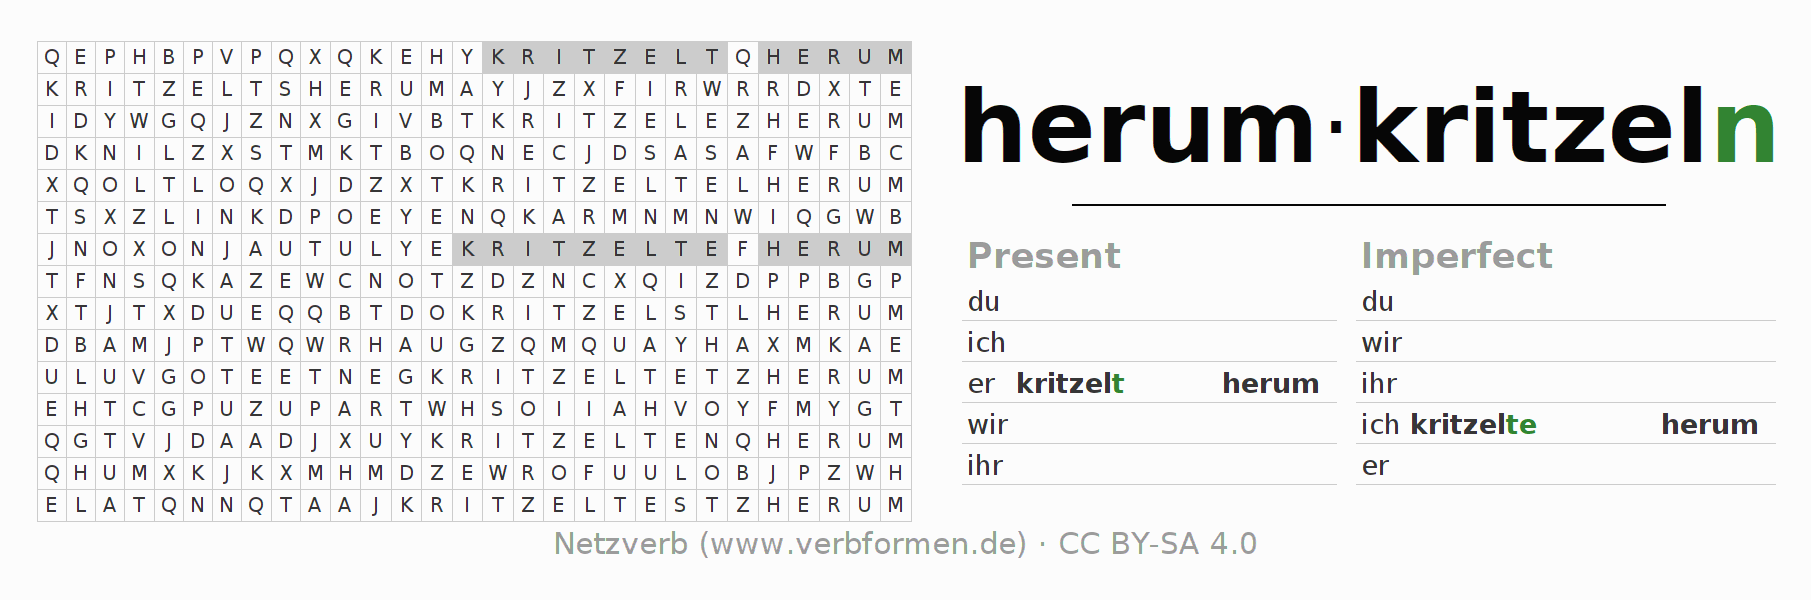 Word search puzzle for the conjugation of the verb herumkritzeln